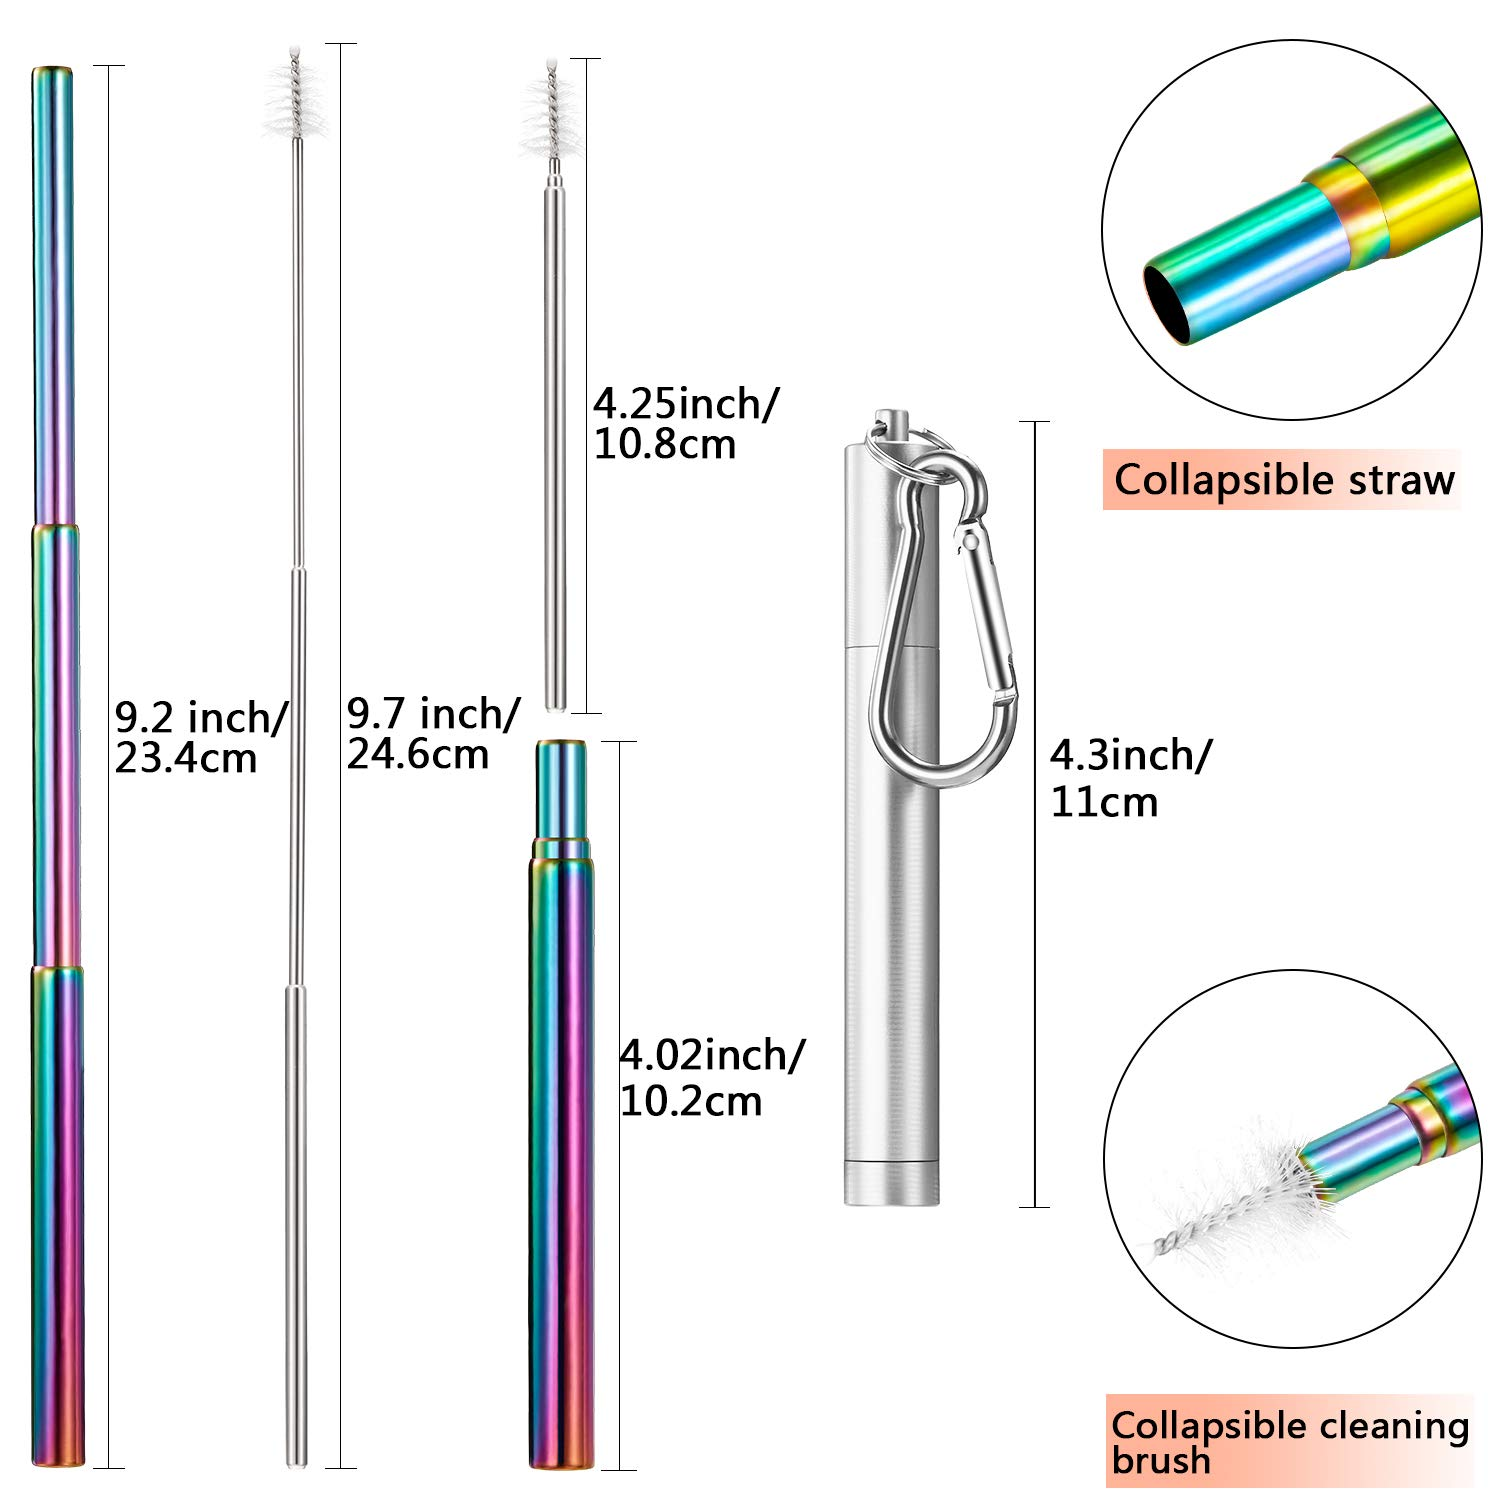 3 Pieces Portable Stainless Steel Straw Set Telescopic Reusable Drinking Straws Metal Straw with Cleaning Brush Stainless Steel Carrying Case and Keychain Silver